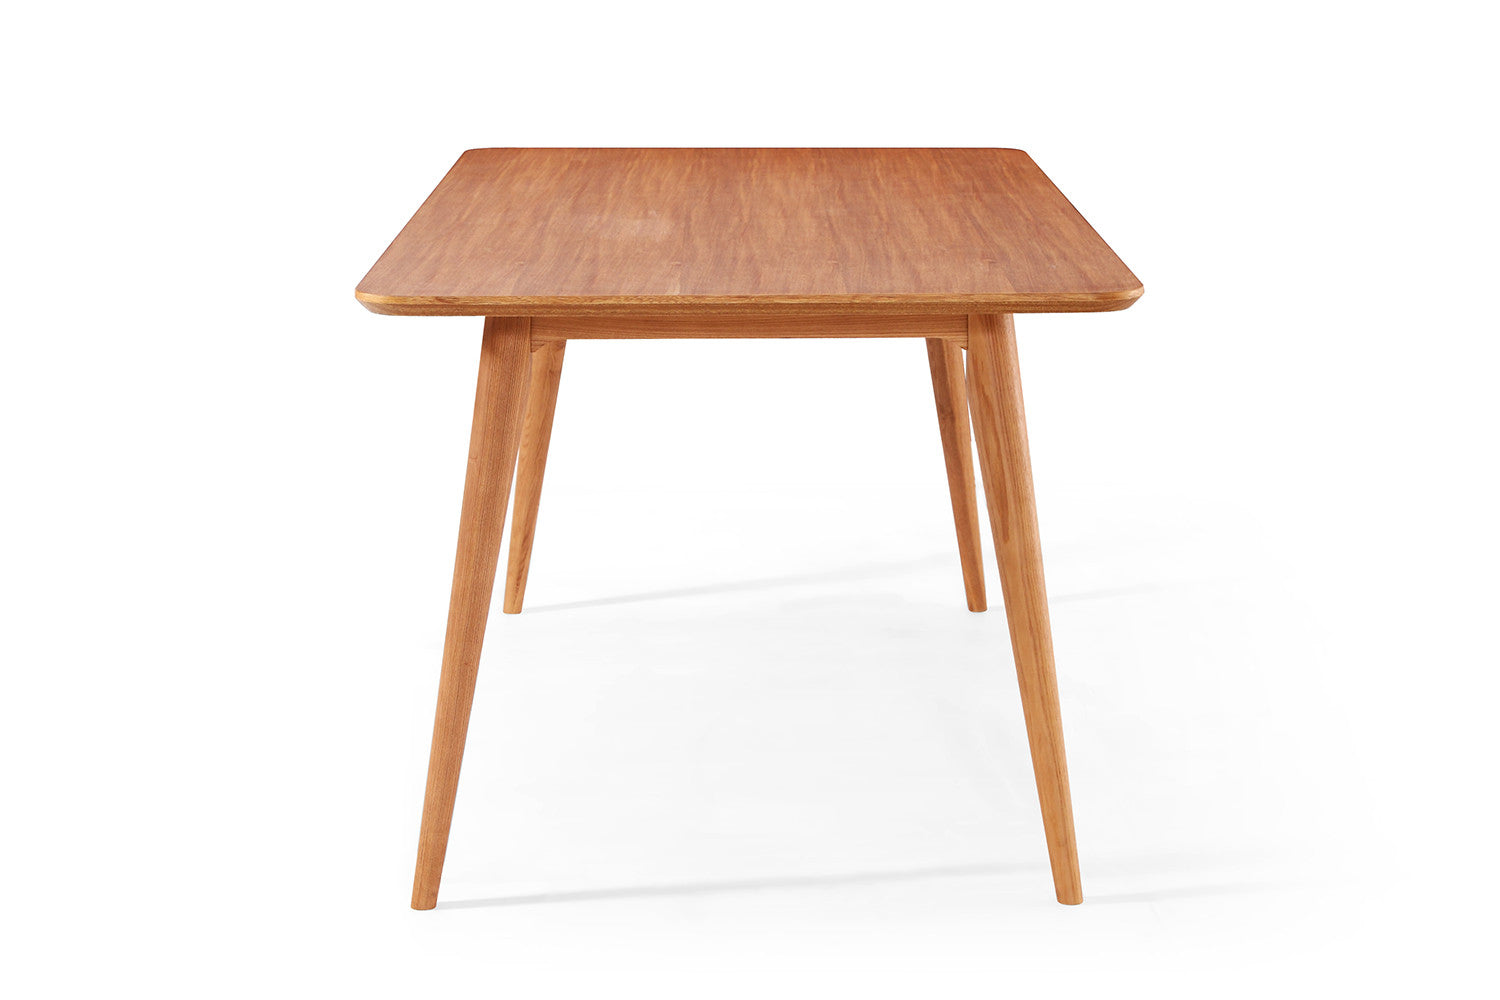 Modele table a manger en bois maison design for Table salle a manger bois